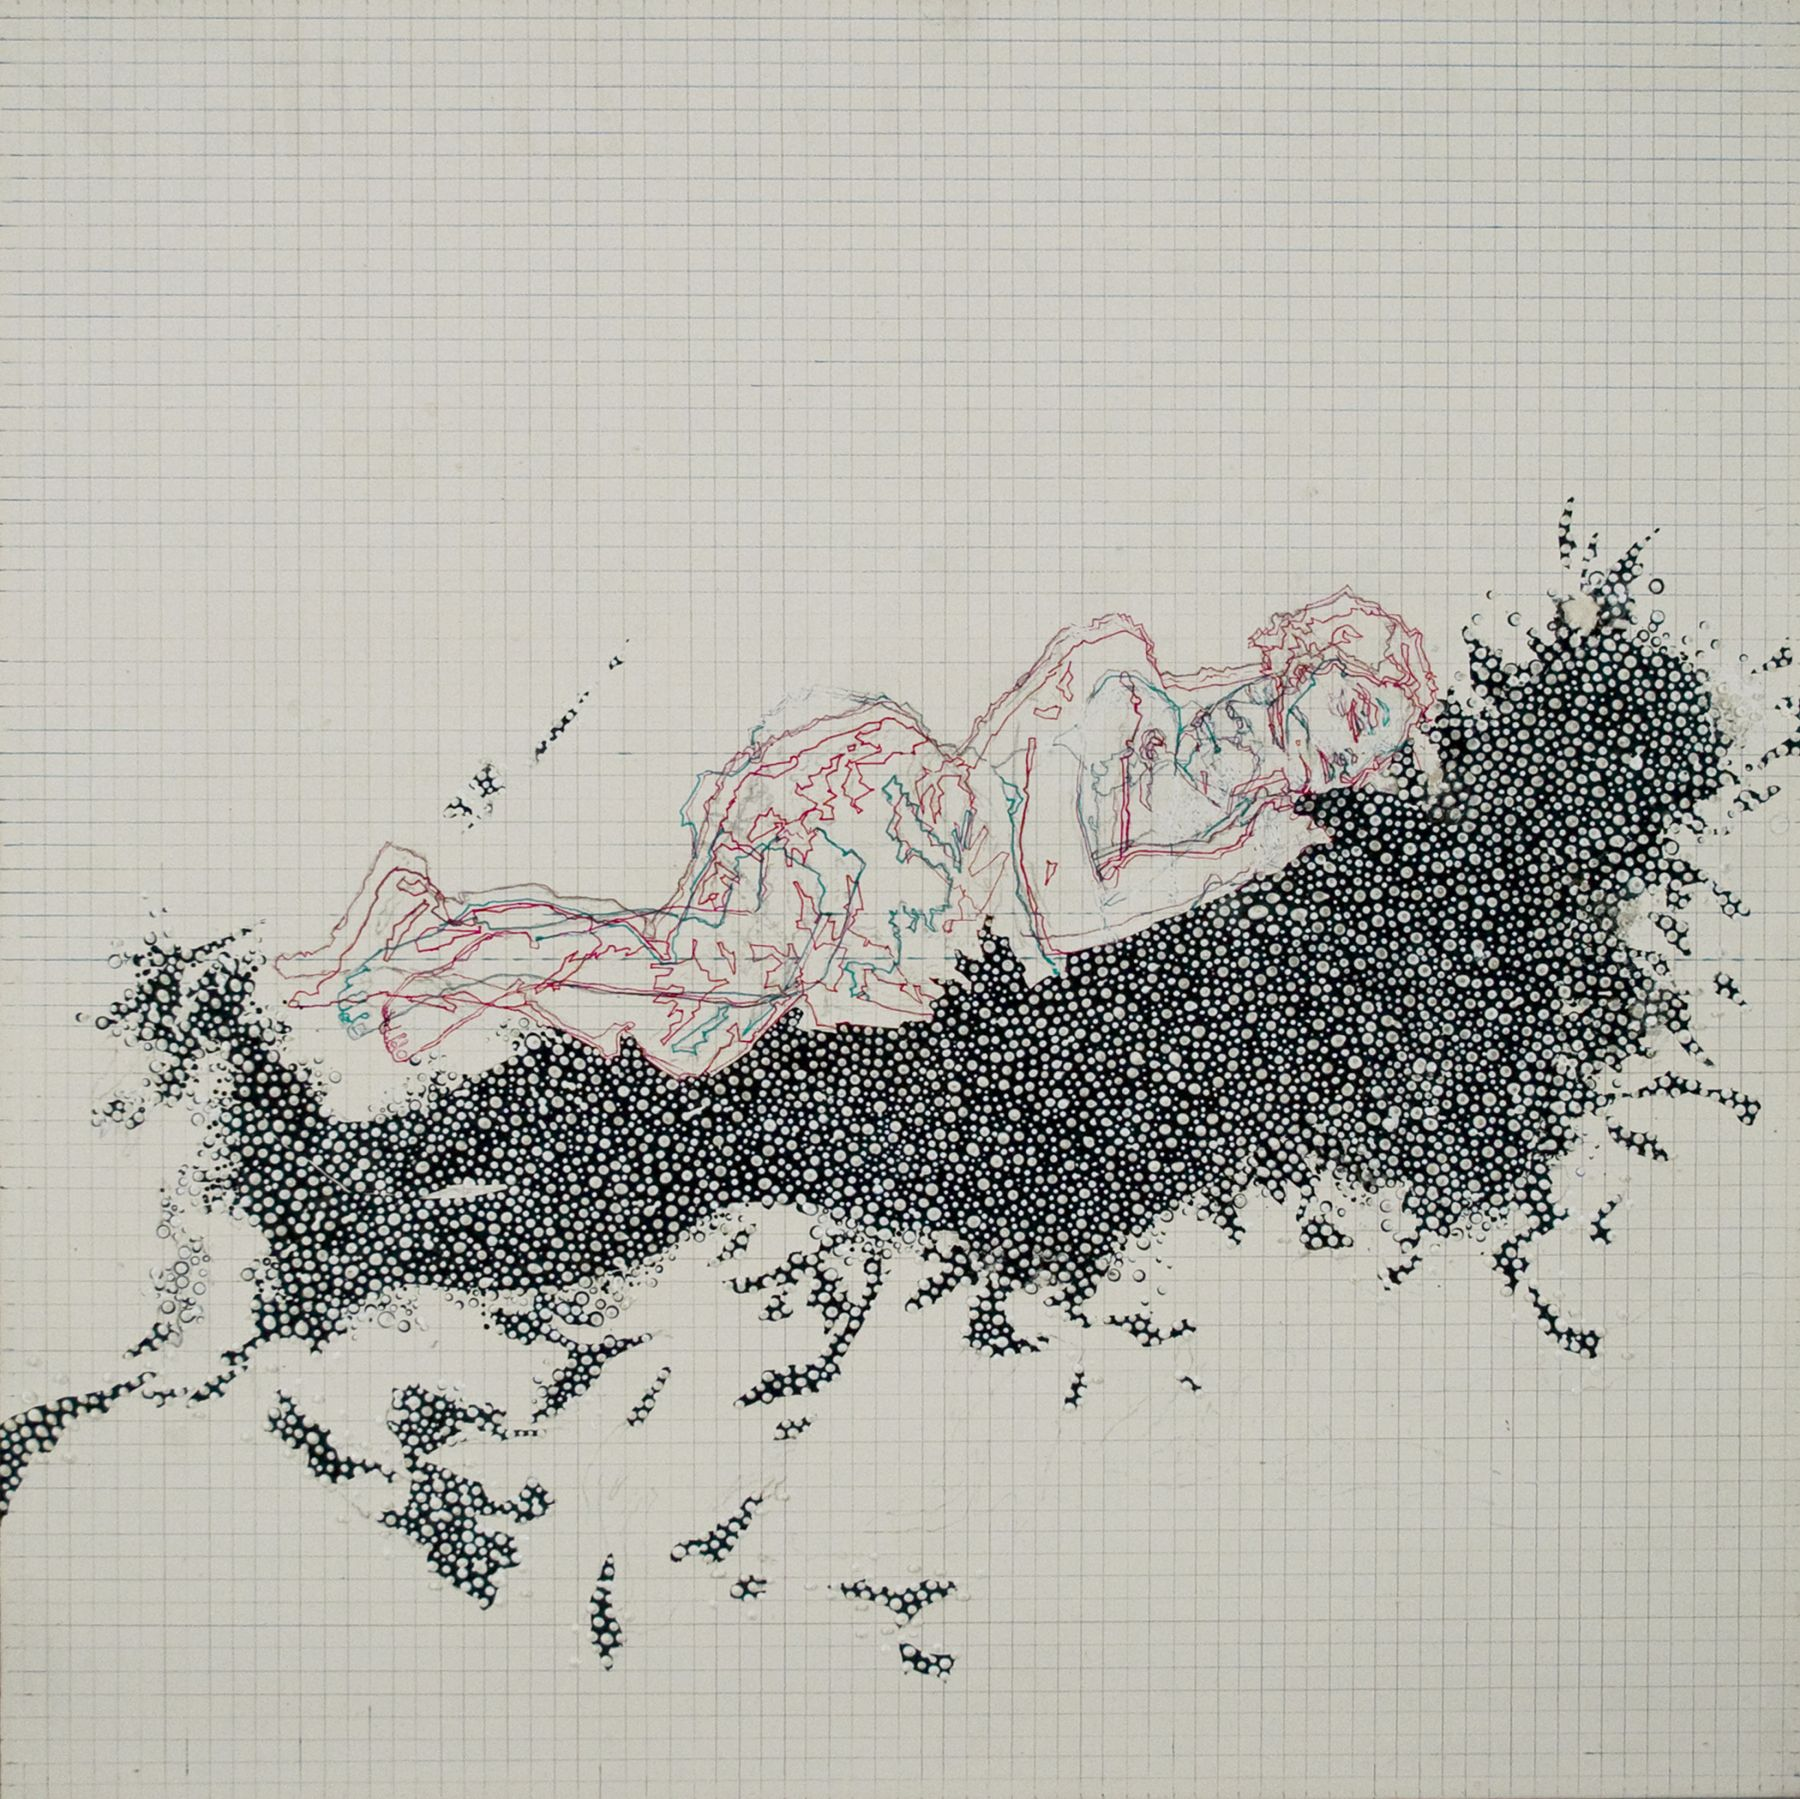 Amélie Chabannes, Bride of the Wind #2, 2010, acrylic, ink and tracing paper on wood panel, 19 3/4 x 19 3/4 inches